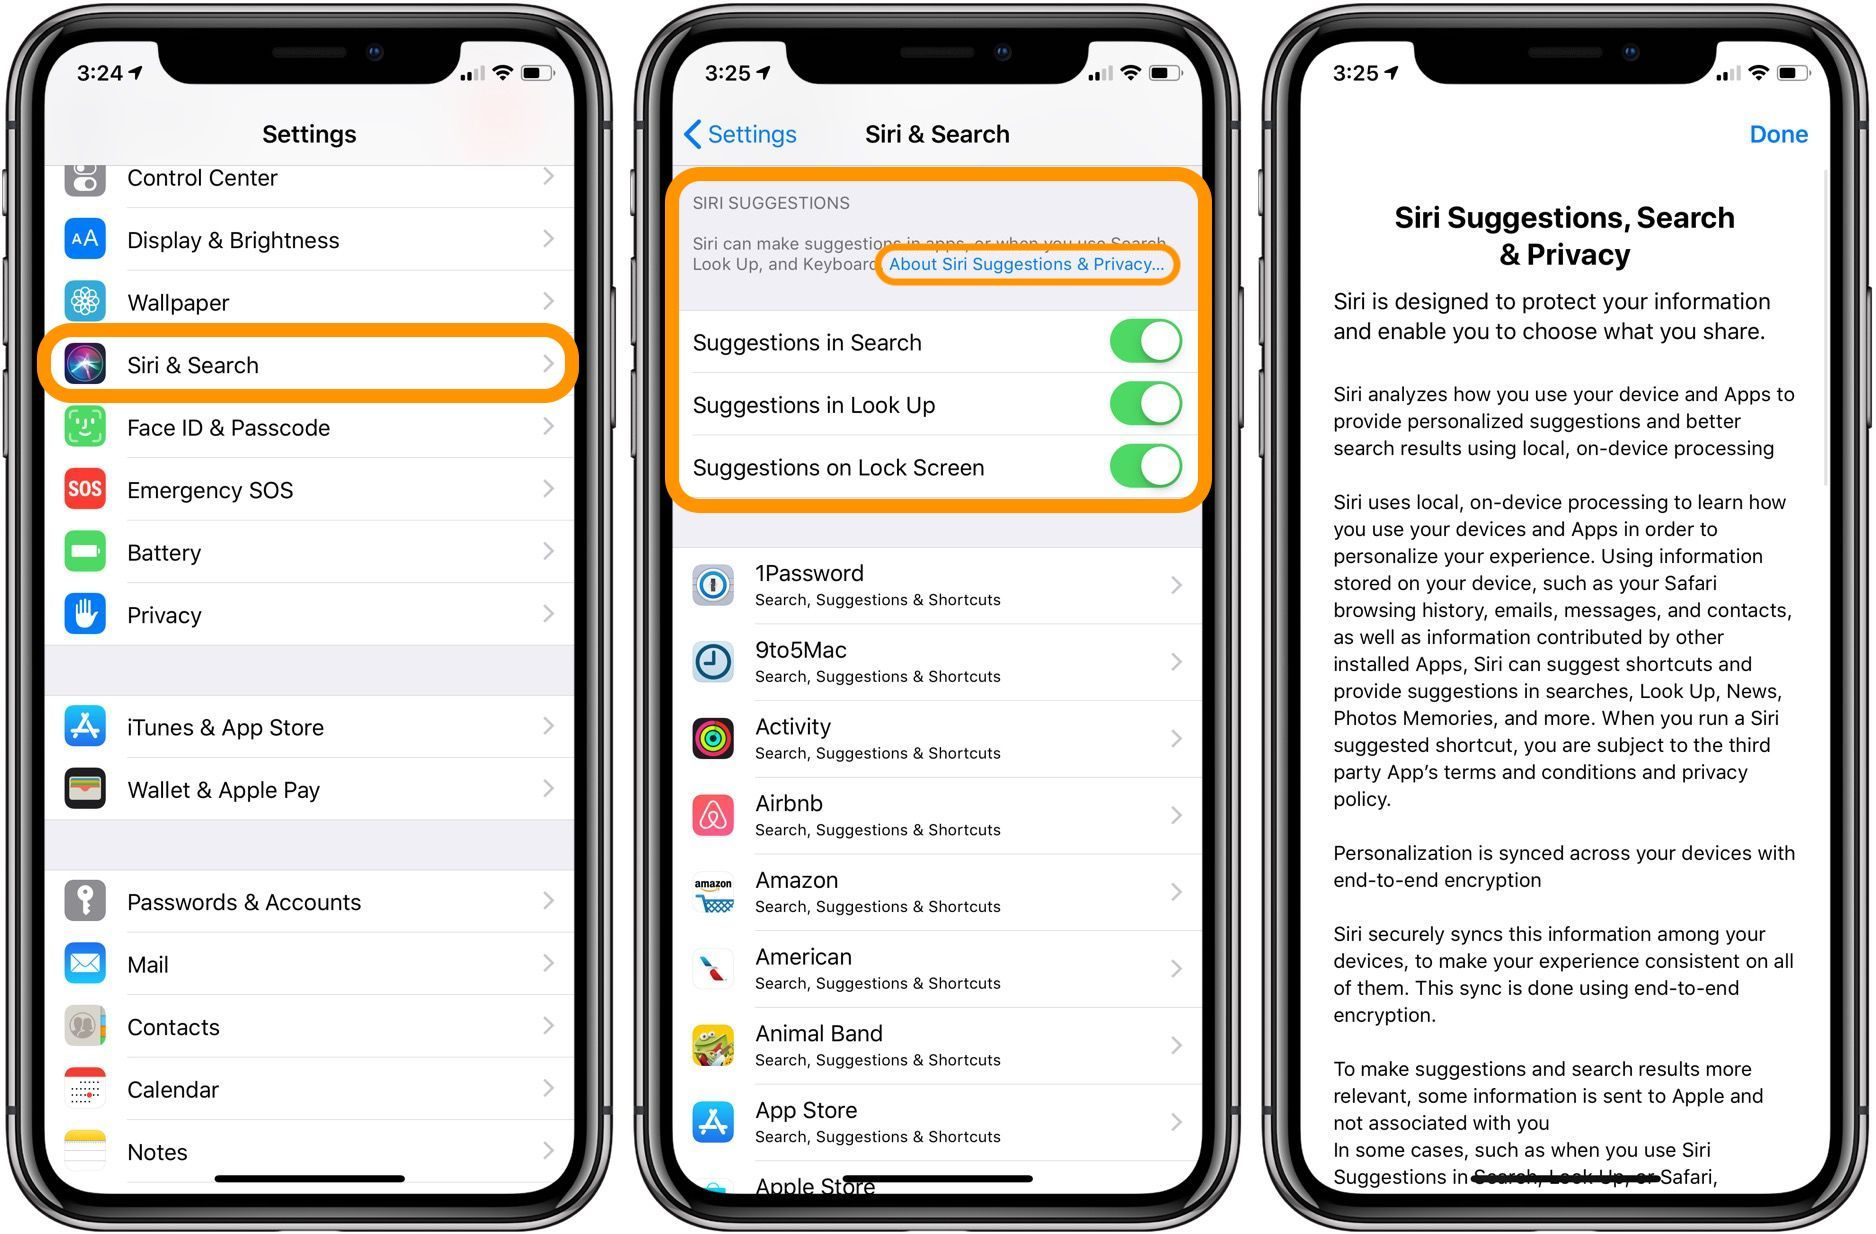 "<span href=""https://9to5mac.com/2018/08/13/iphone-ipad-how-to-customize-siri-suggestions/"">iPhone & iPad: Cómo personalizar Siri sugerencias</a>"